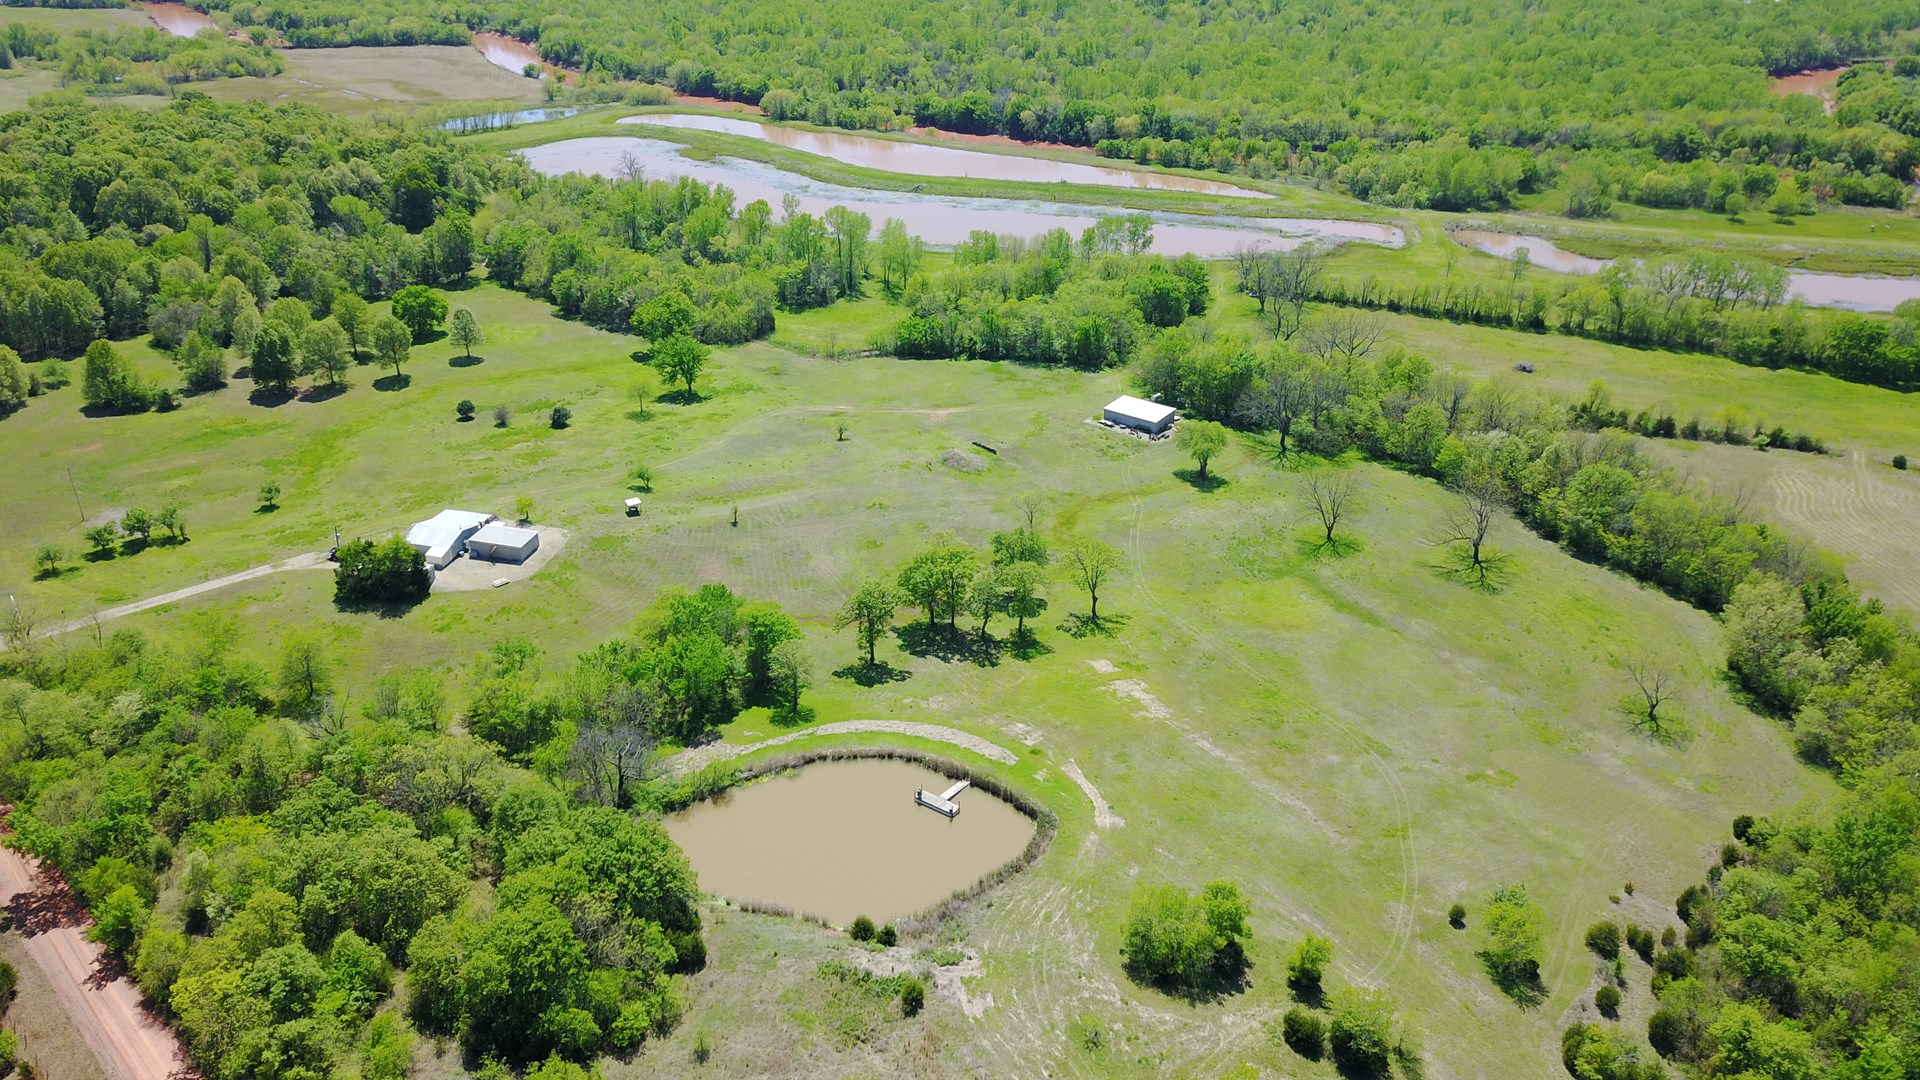 Oklahoma Hunting Land for Sale - Near OKC with a Cabin